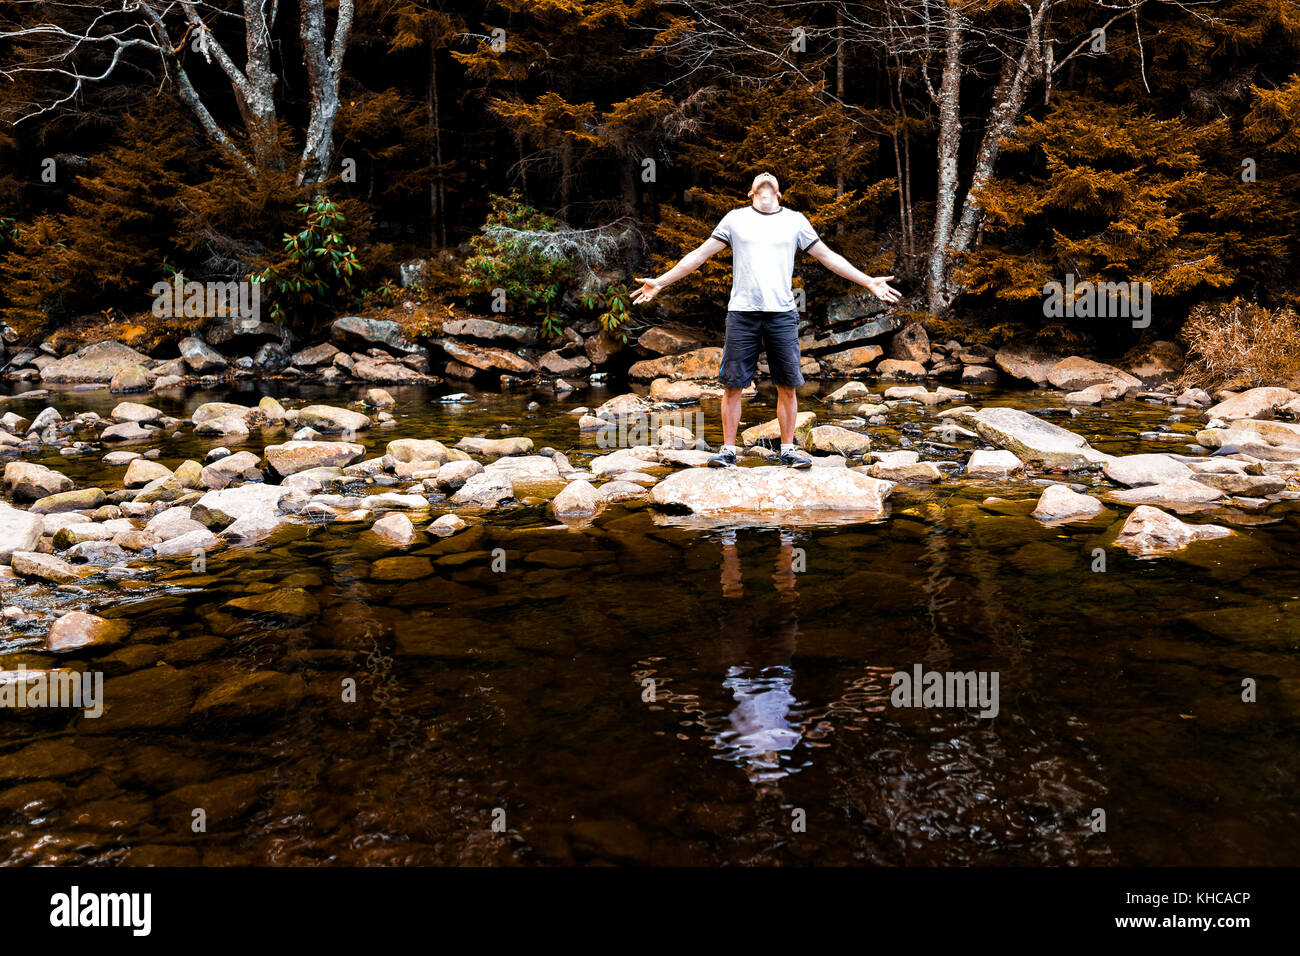 Young man with outstretched arms meditating enjoying nature on peaceful, calm Red Creek river in Dolly Sods, West - Stock Image